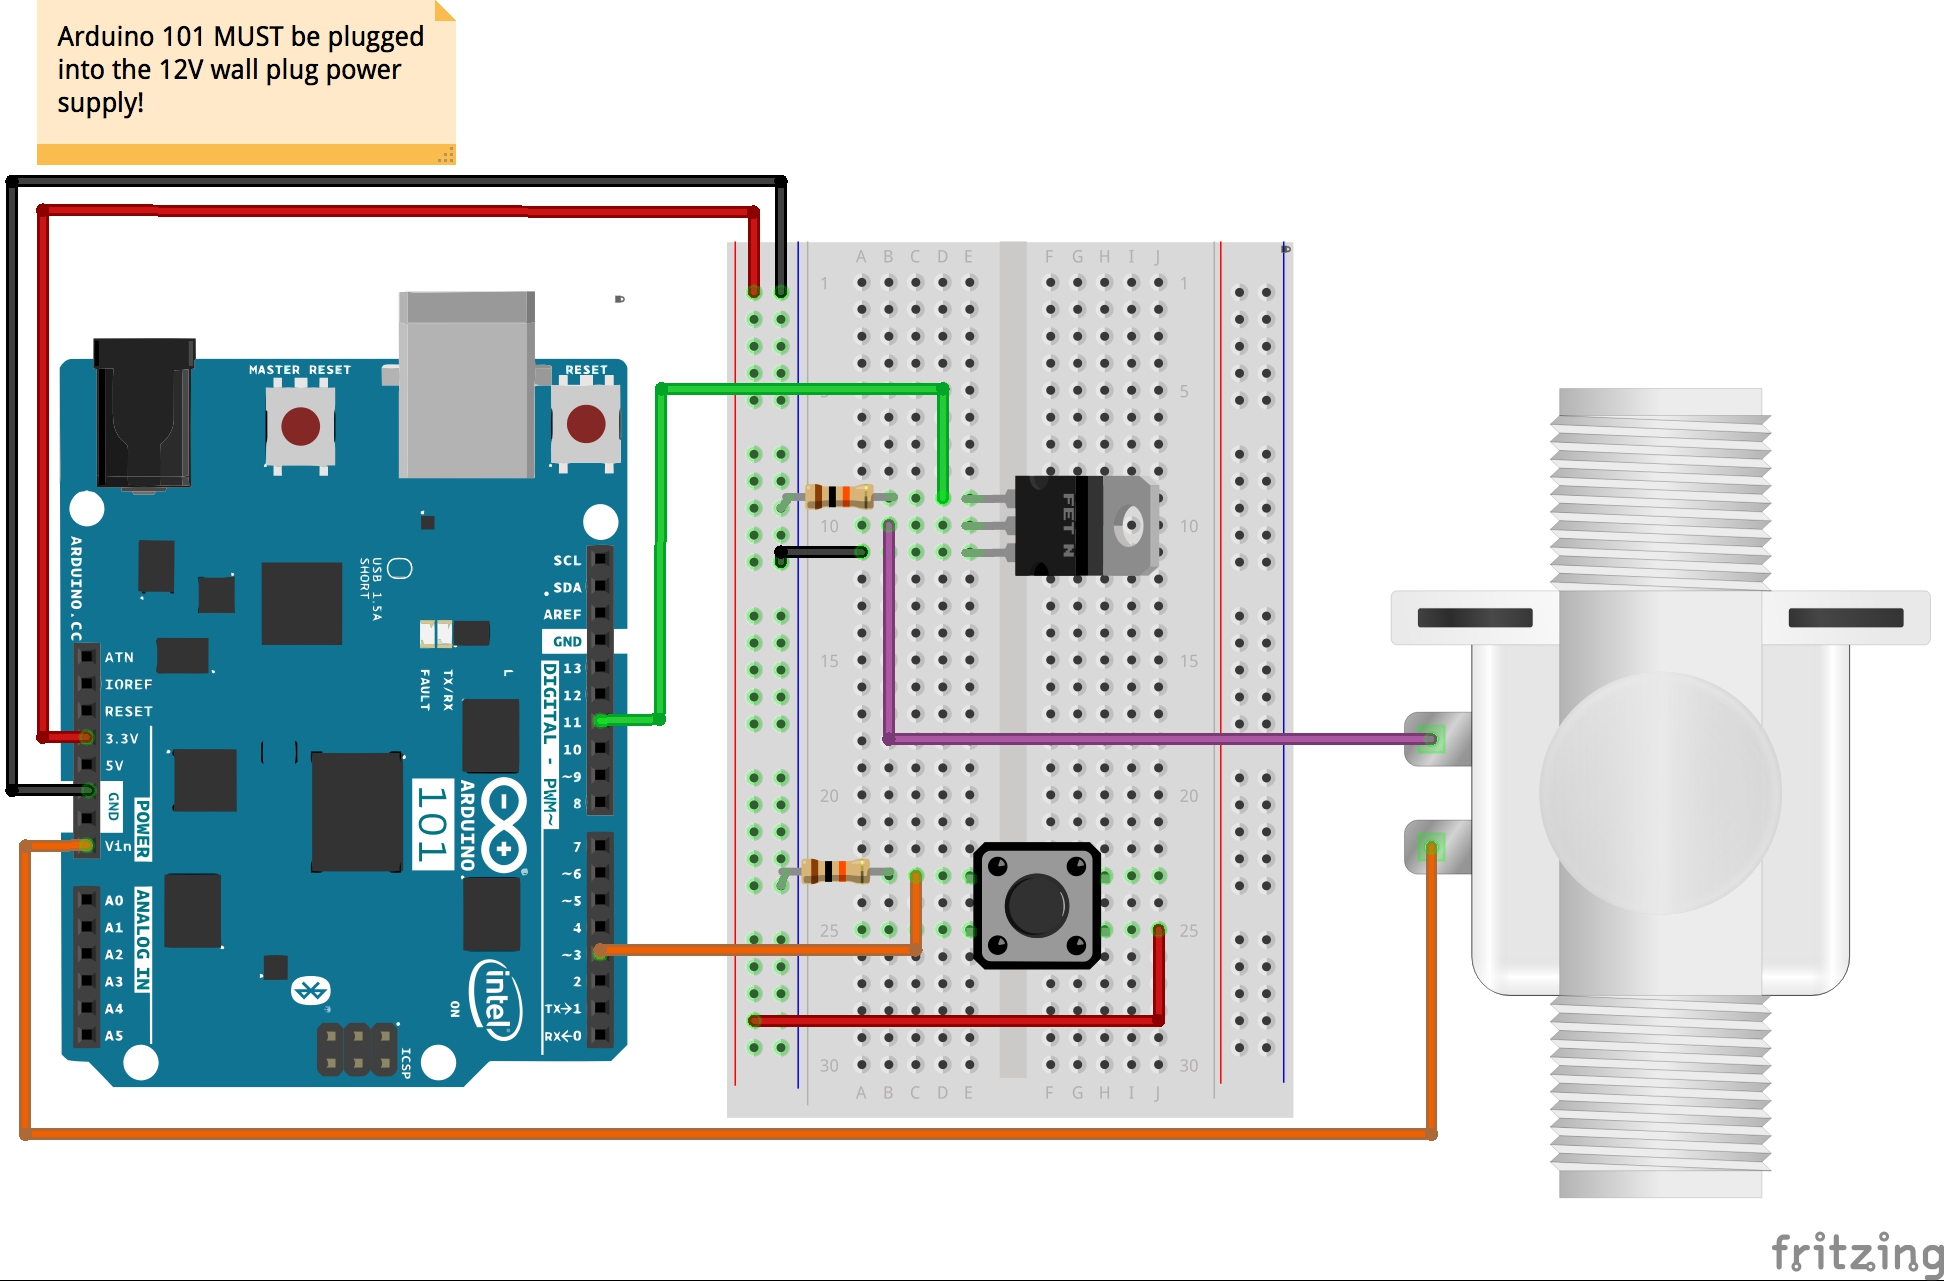 Smart Home Expansion Kit For Arduino 101 Standard 12 Volt Solenoid Wiring Diagram Having A Hard Time Seeing The Circuit Click On Closer Look